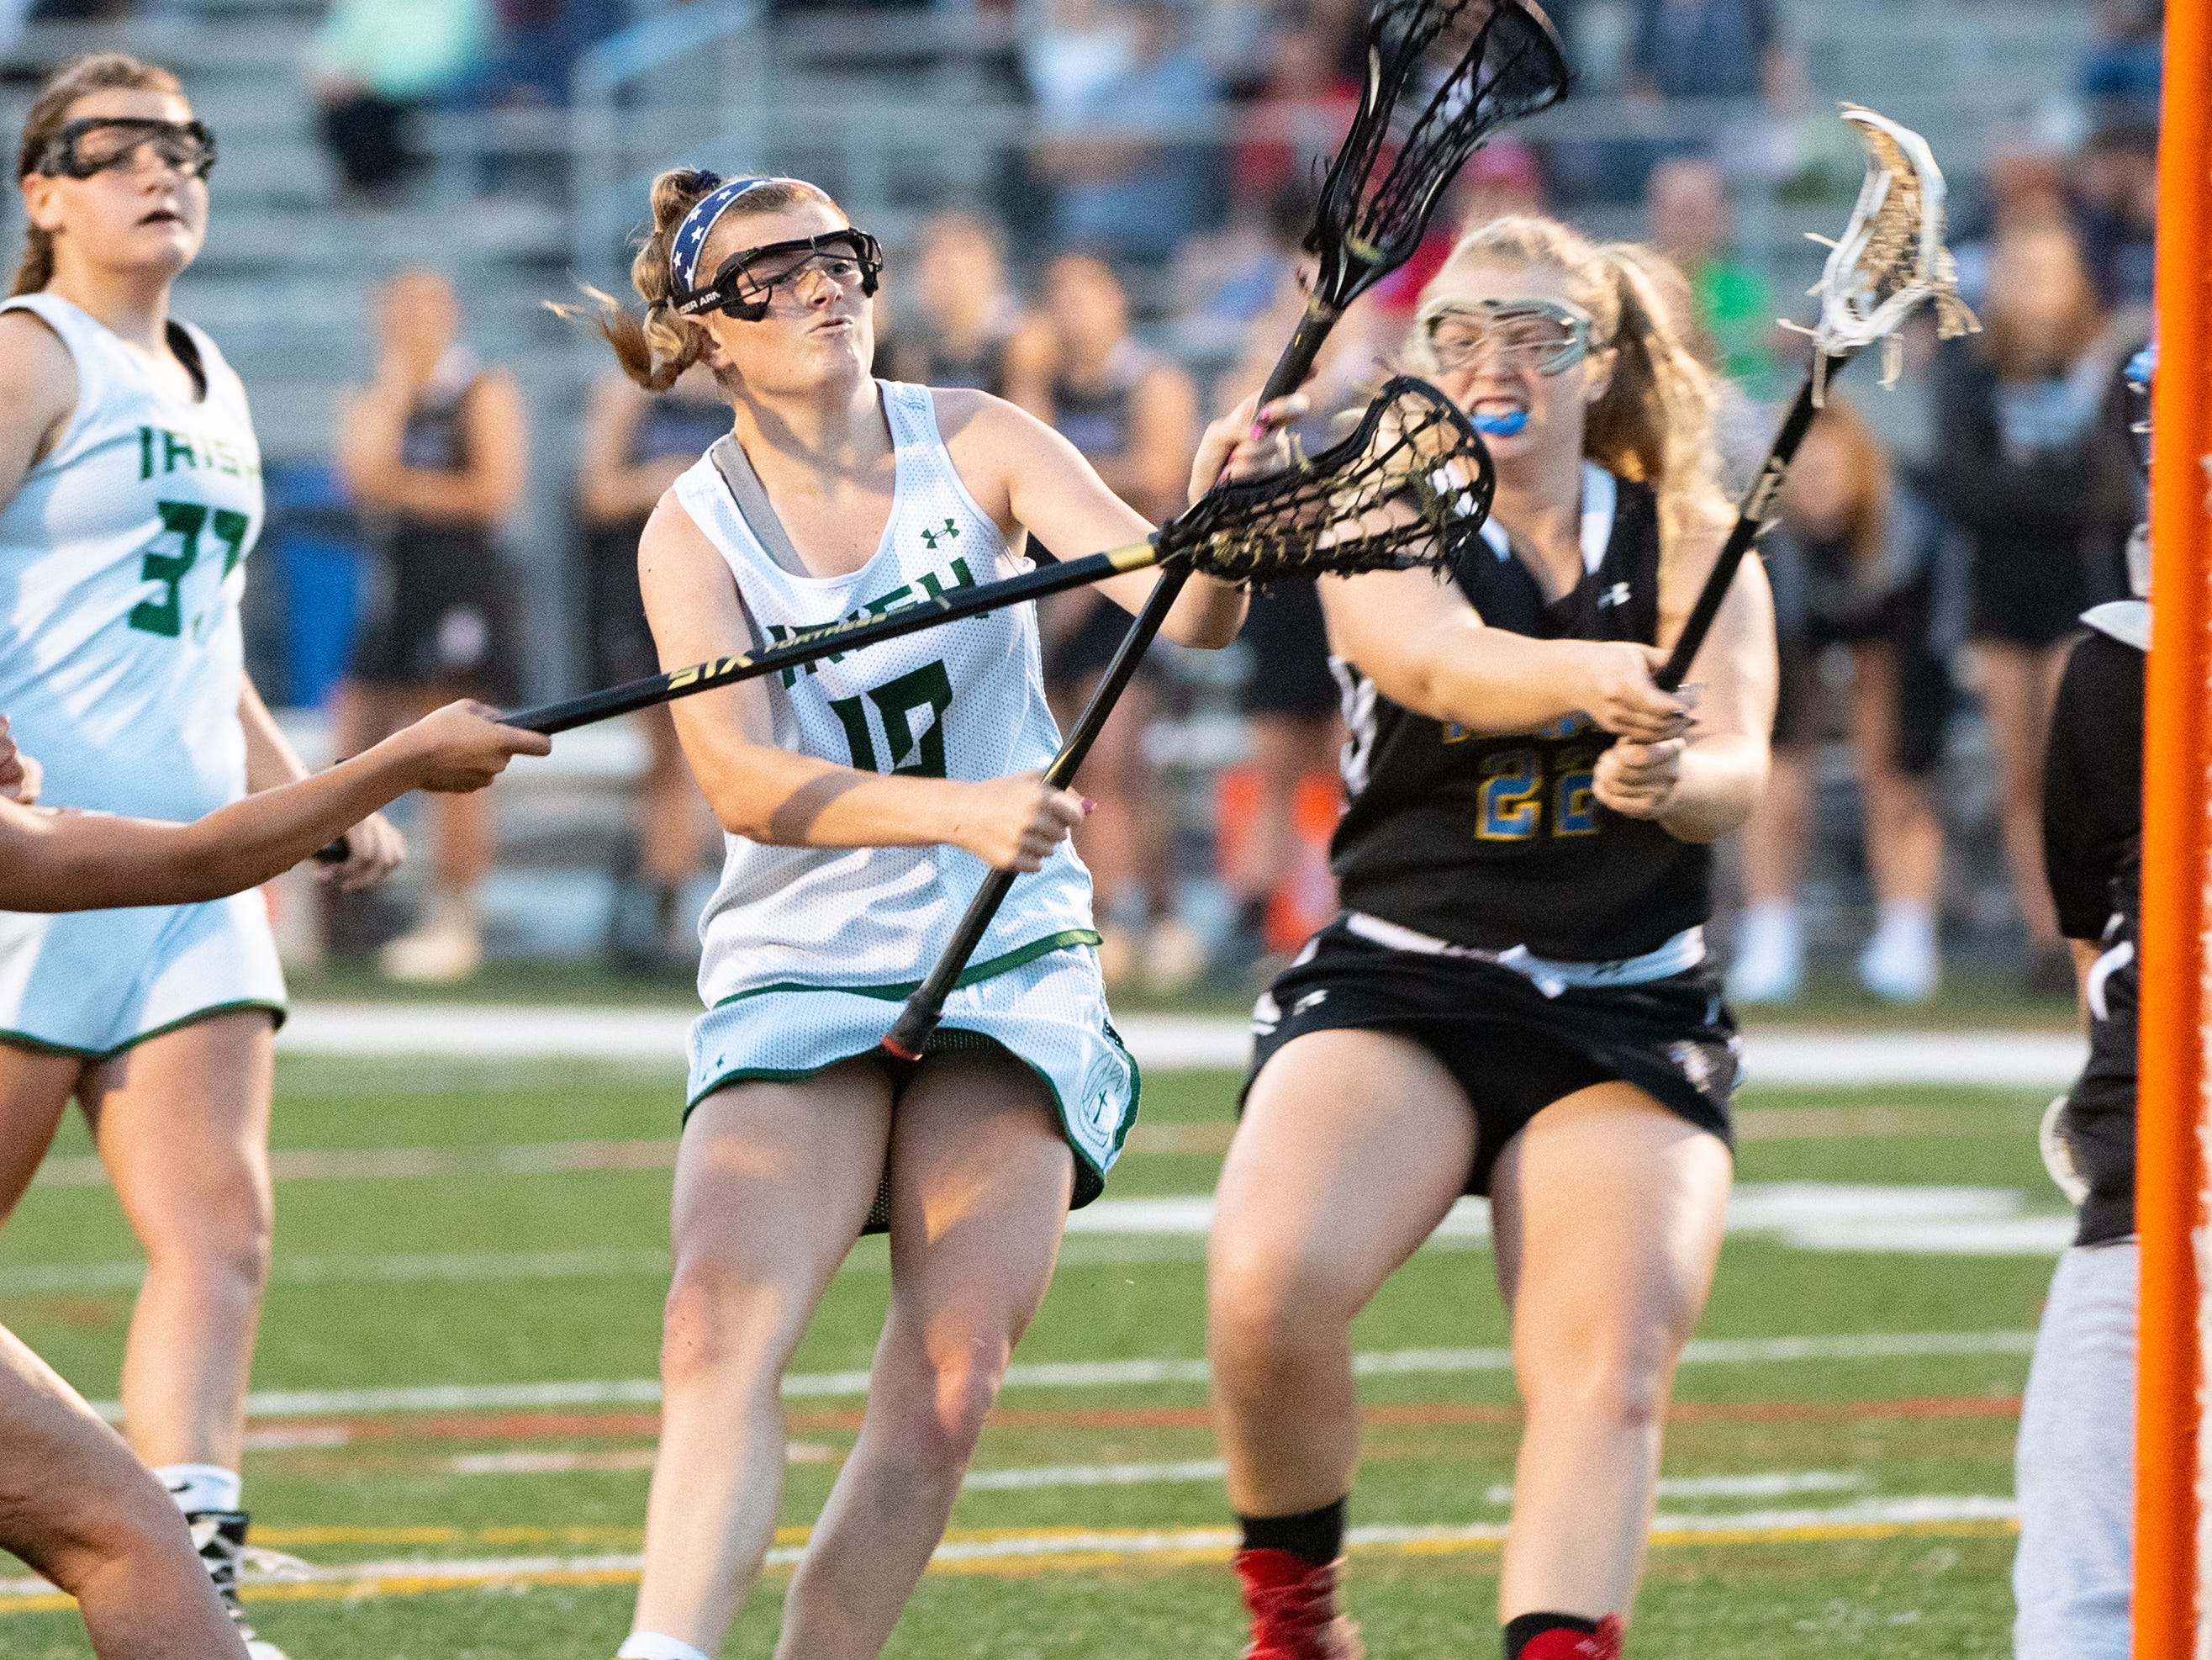 Sydney Mentzer (10) shoots during the YAIAA girls lacrosse championship game between York Catholic and Kennard-Dale, May 10, 2019 at Eastern York High School. The Rams defeated the Fighting Irish 11 to 10.